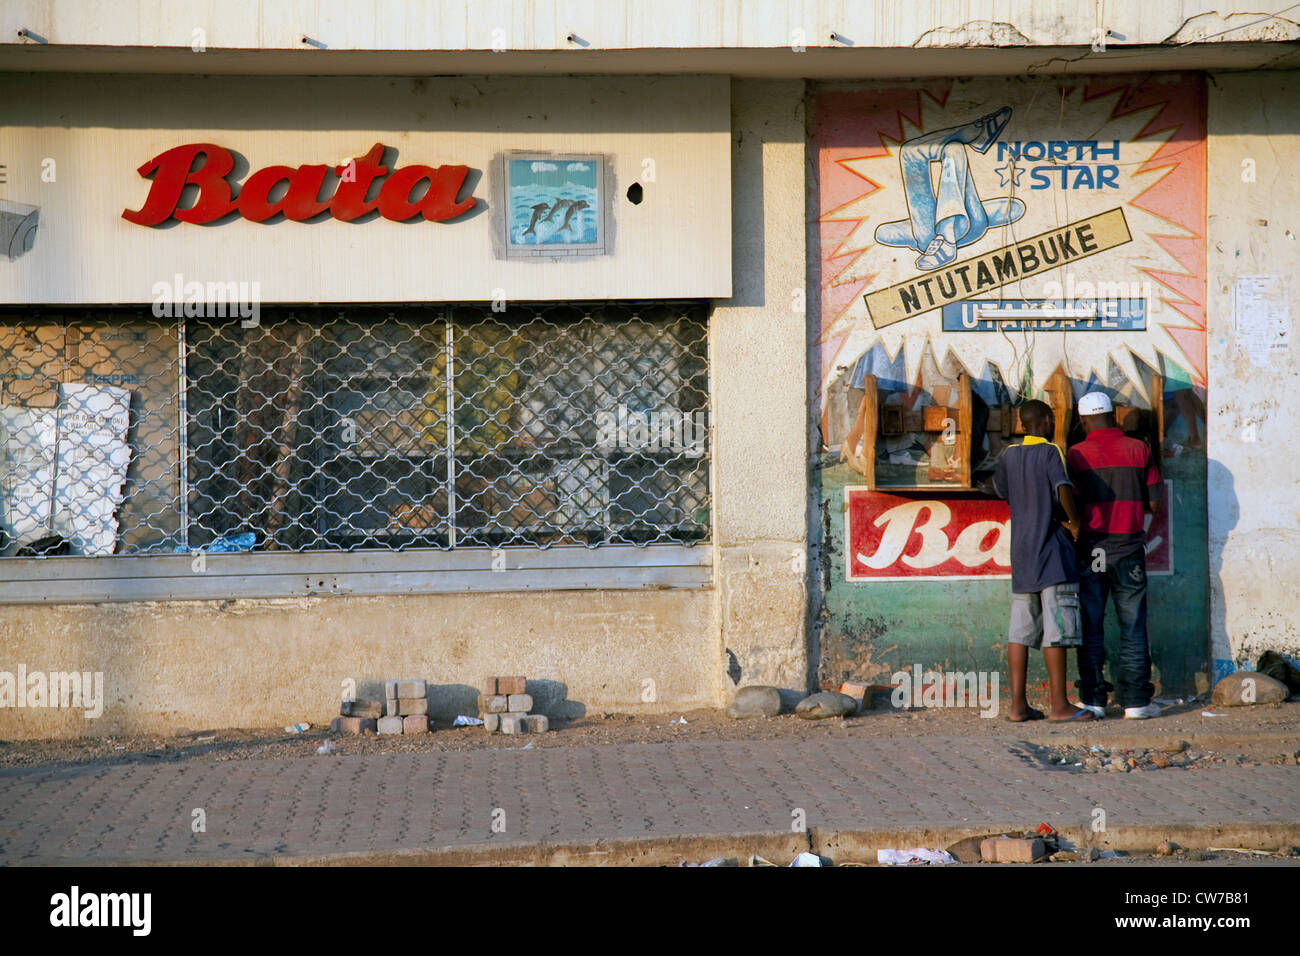 street scene in the capital with little shops near the main market and two men using a public phone, Burundi, Bujumbura - Stock Image